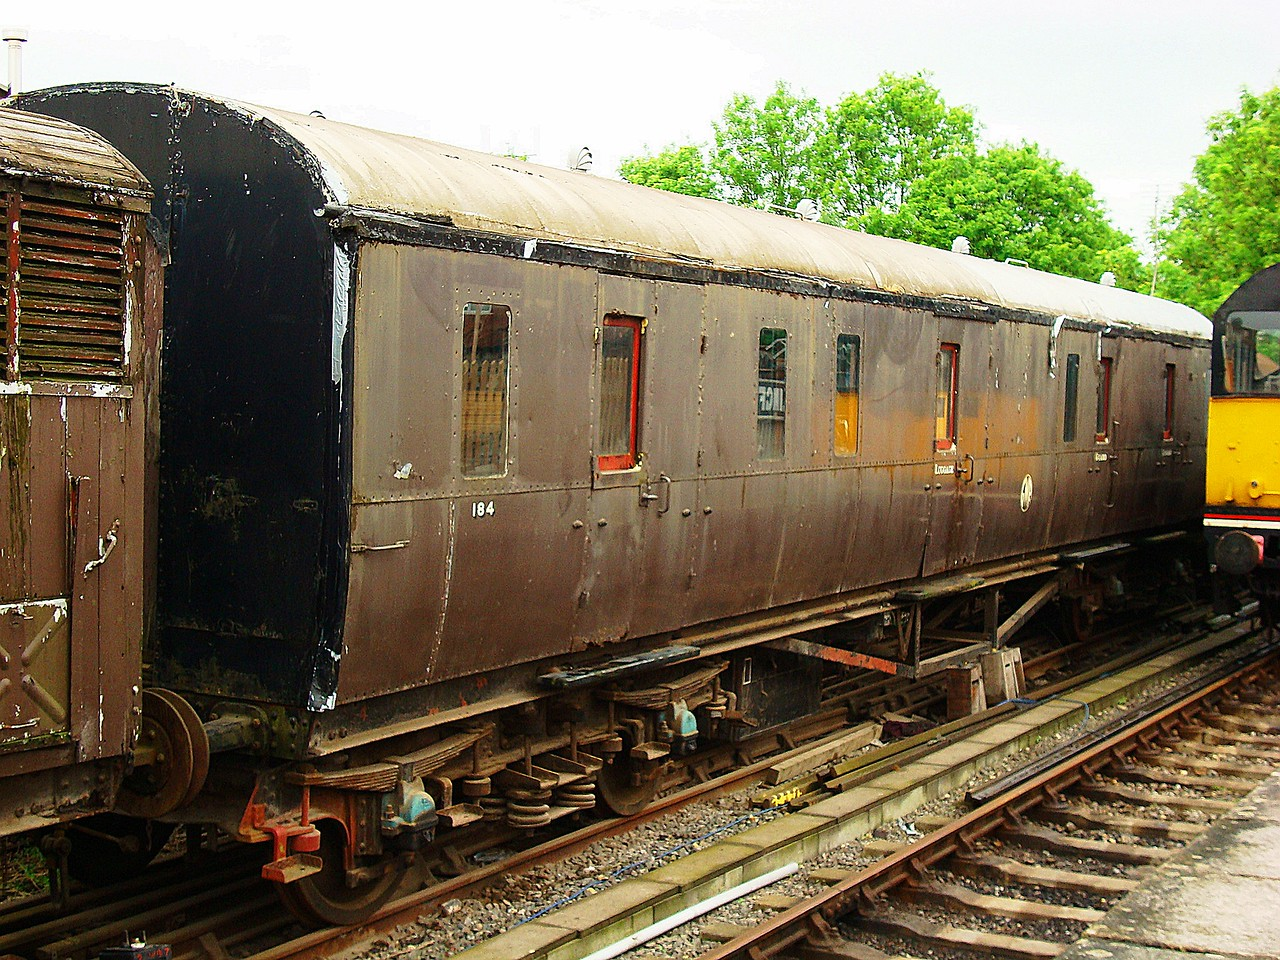 GWR 184 Gangway Full Brake 'Collett BG' 16,05,2008.